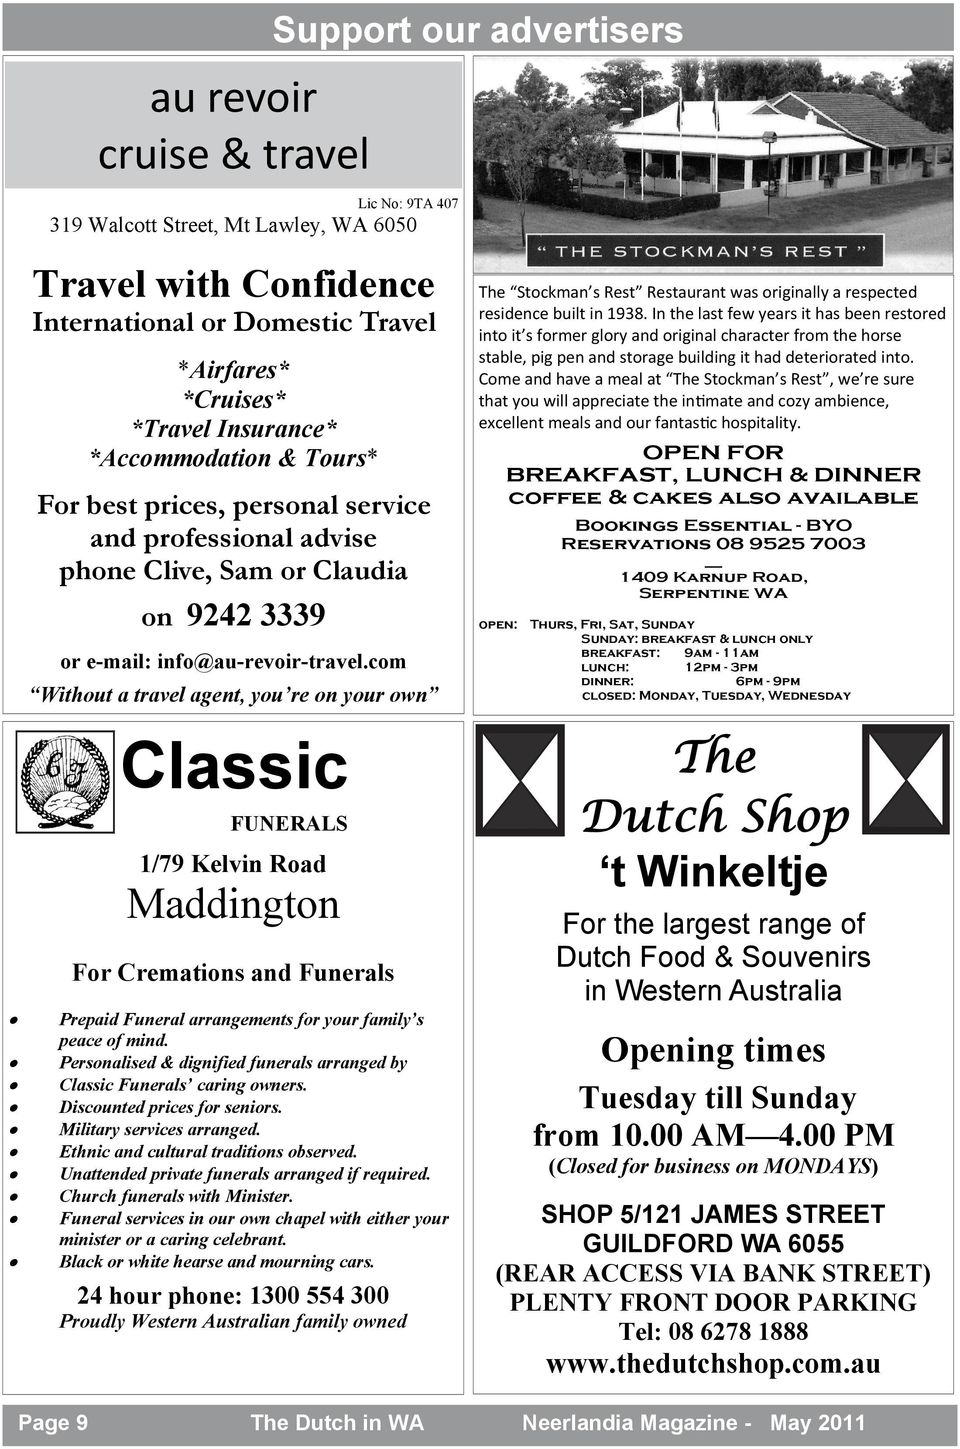 Perth wa may 2011 volume 43 issue 4 pdf com without a travel agent you re on your own classic support our advertisers funerals fandeluxe Image collections